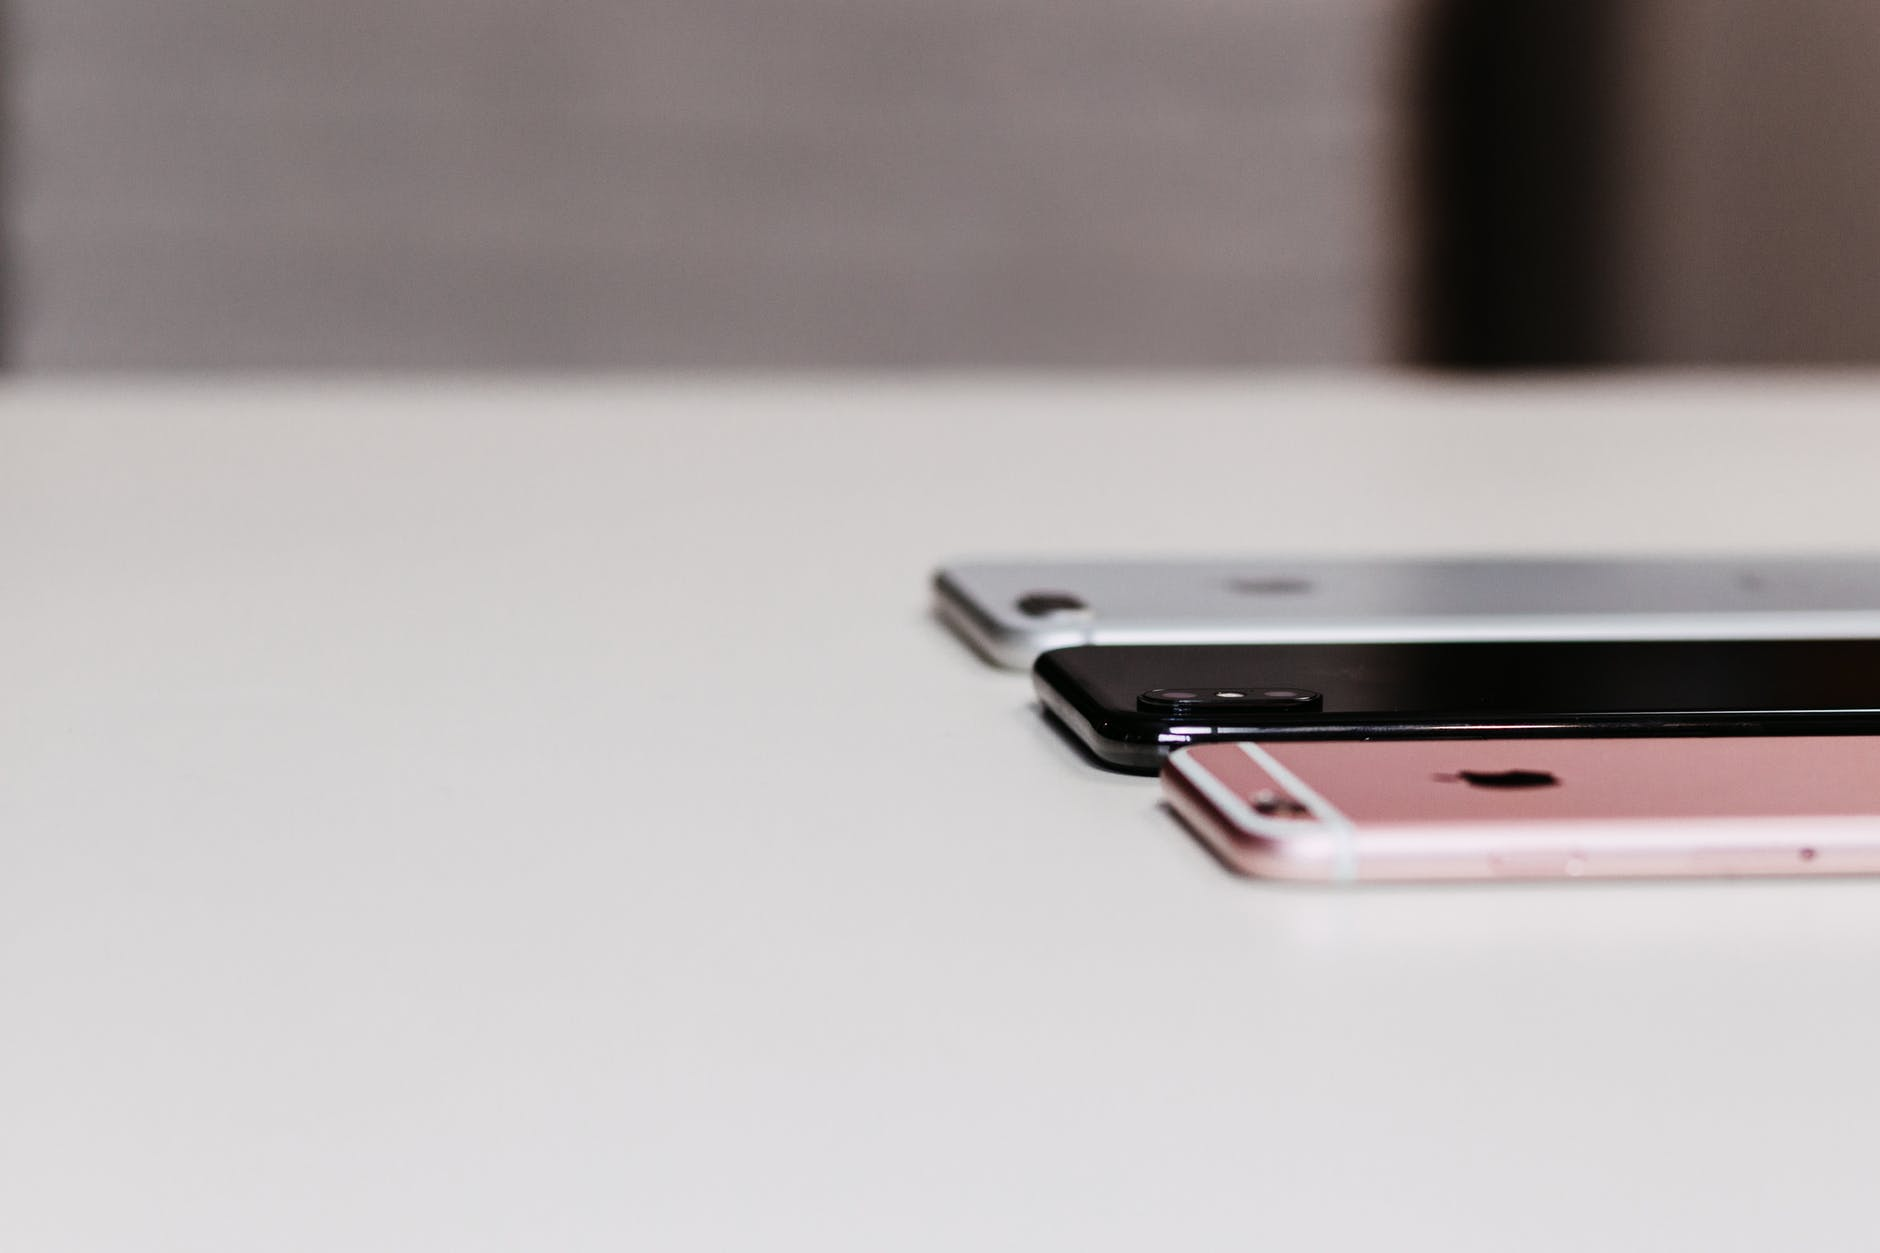 Switching phones with eSIM is a hassle (for now). Source: Pexels